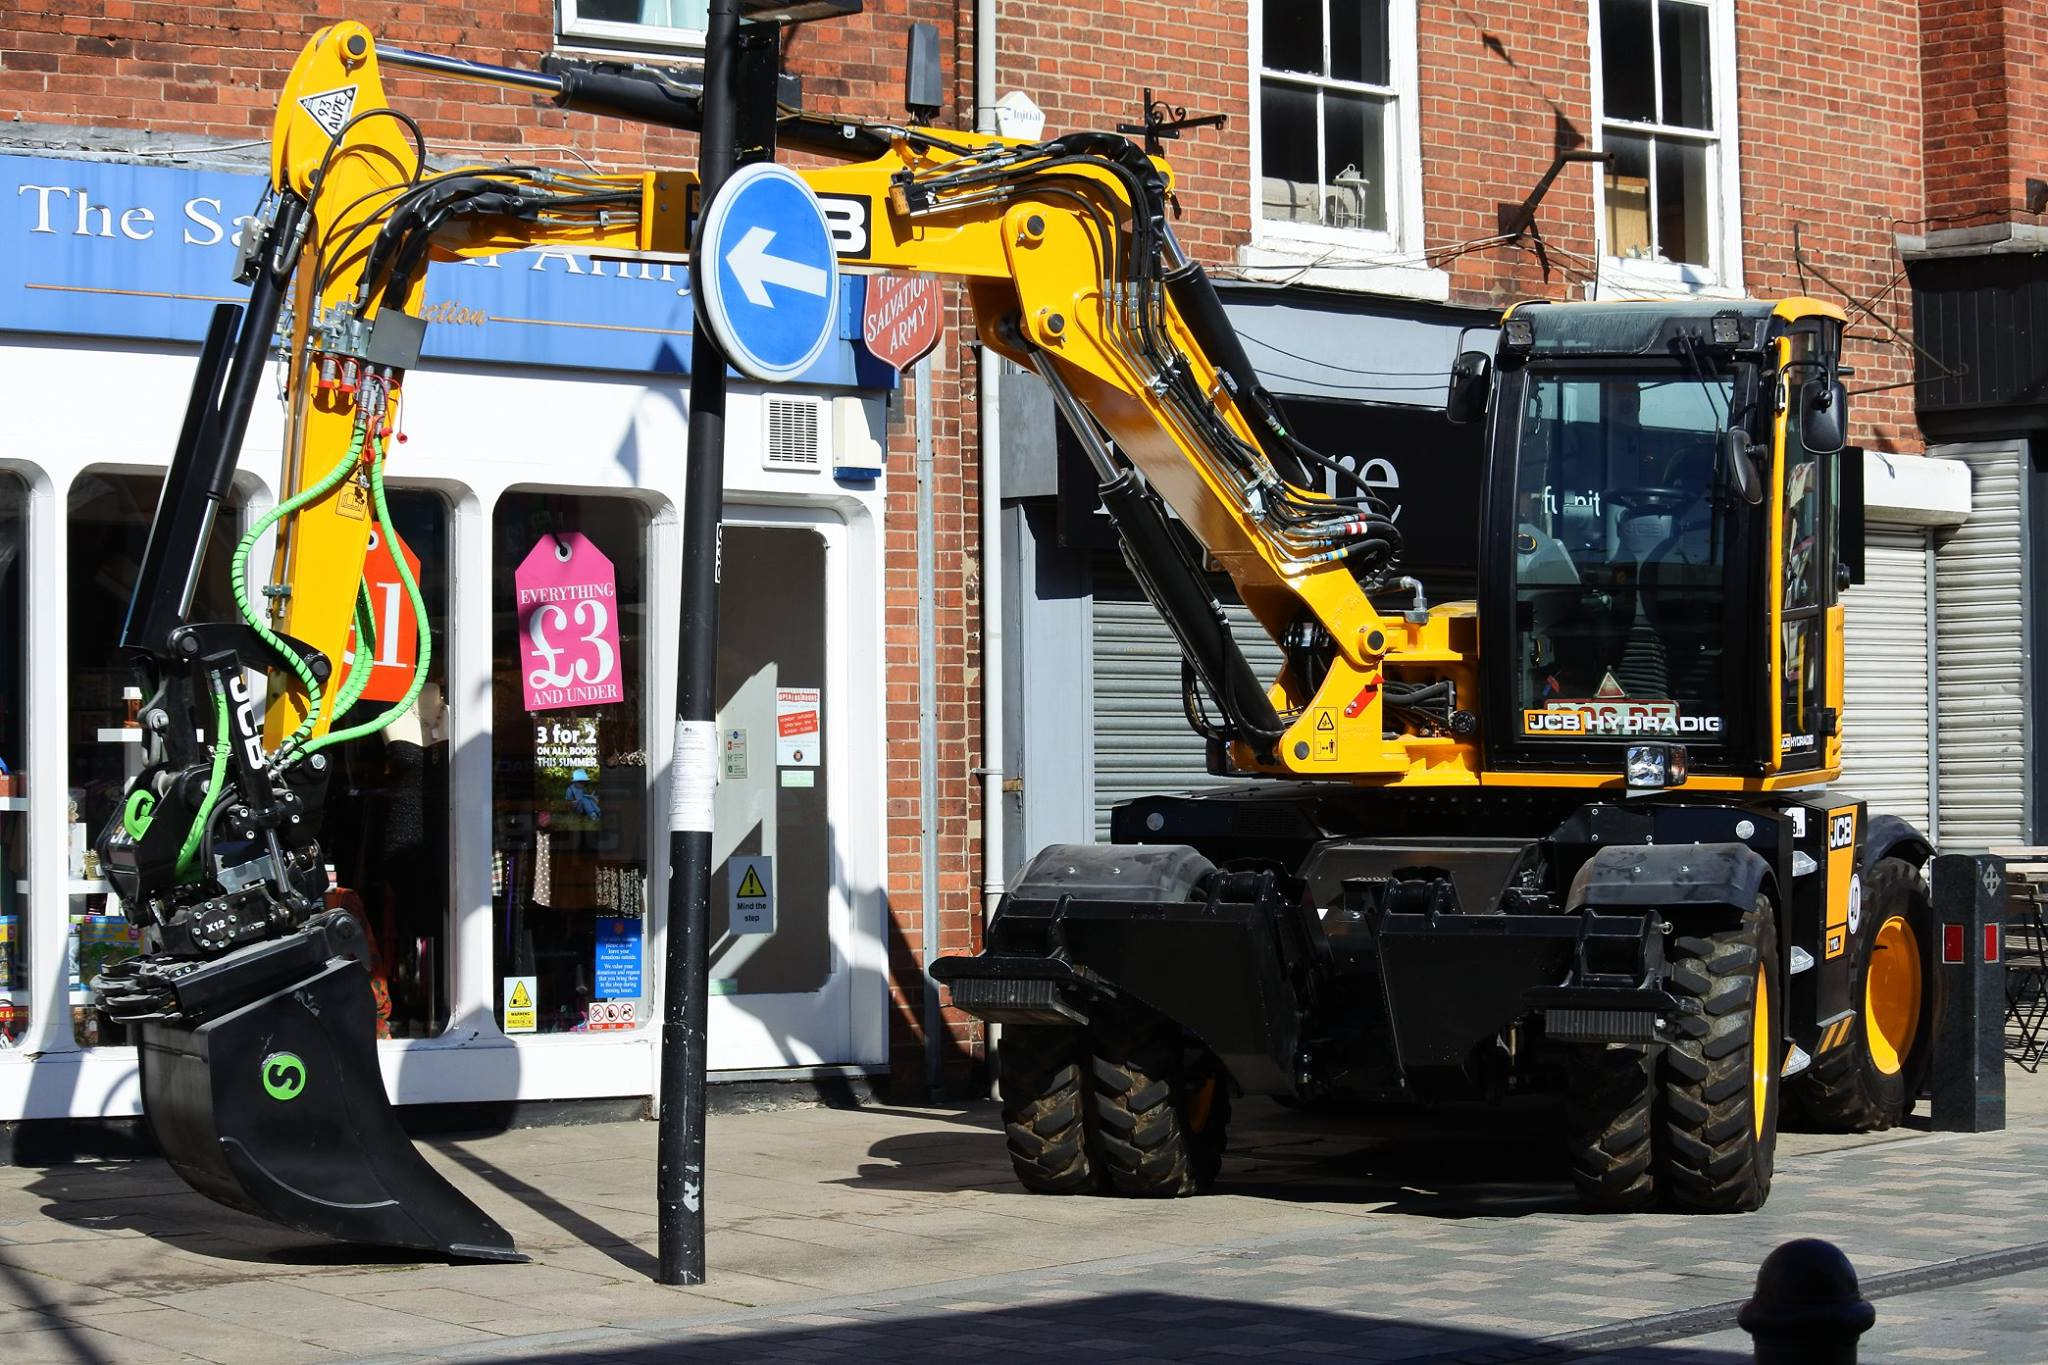 JCB on Uttoxeter High Street